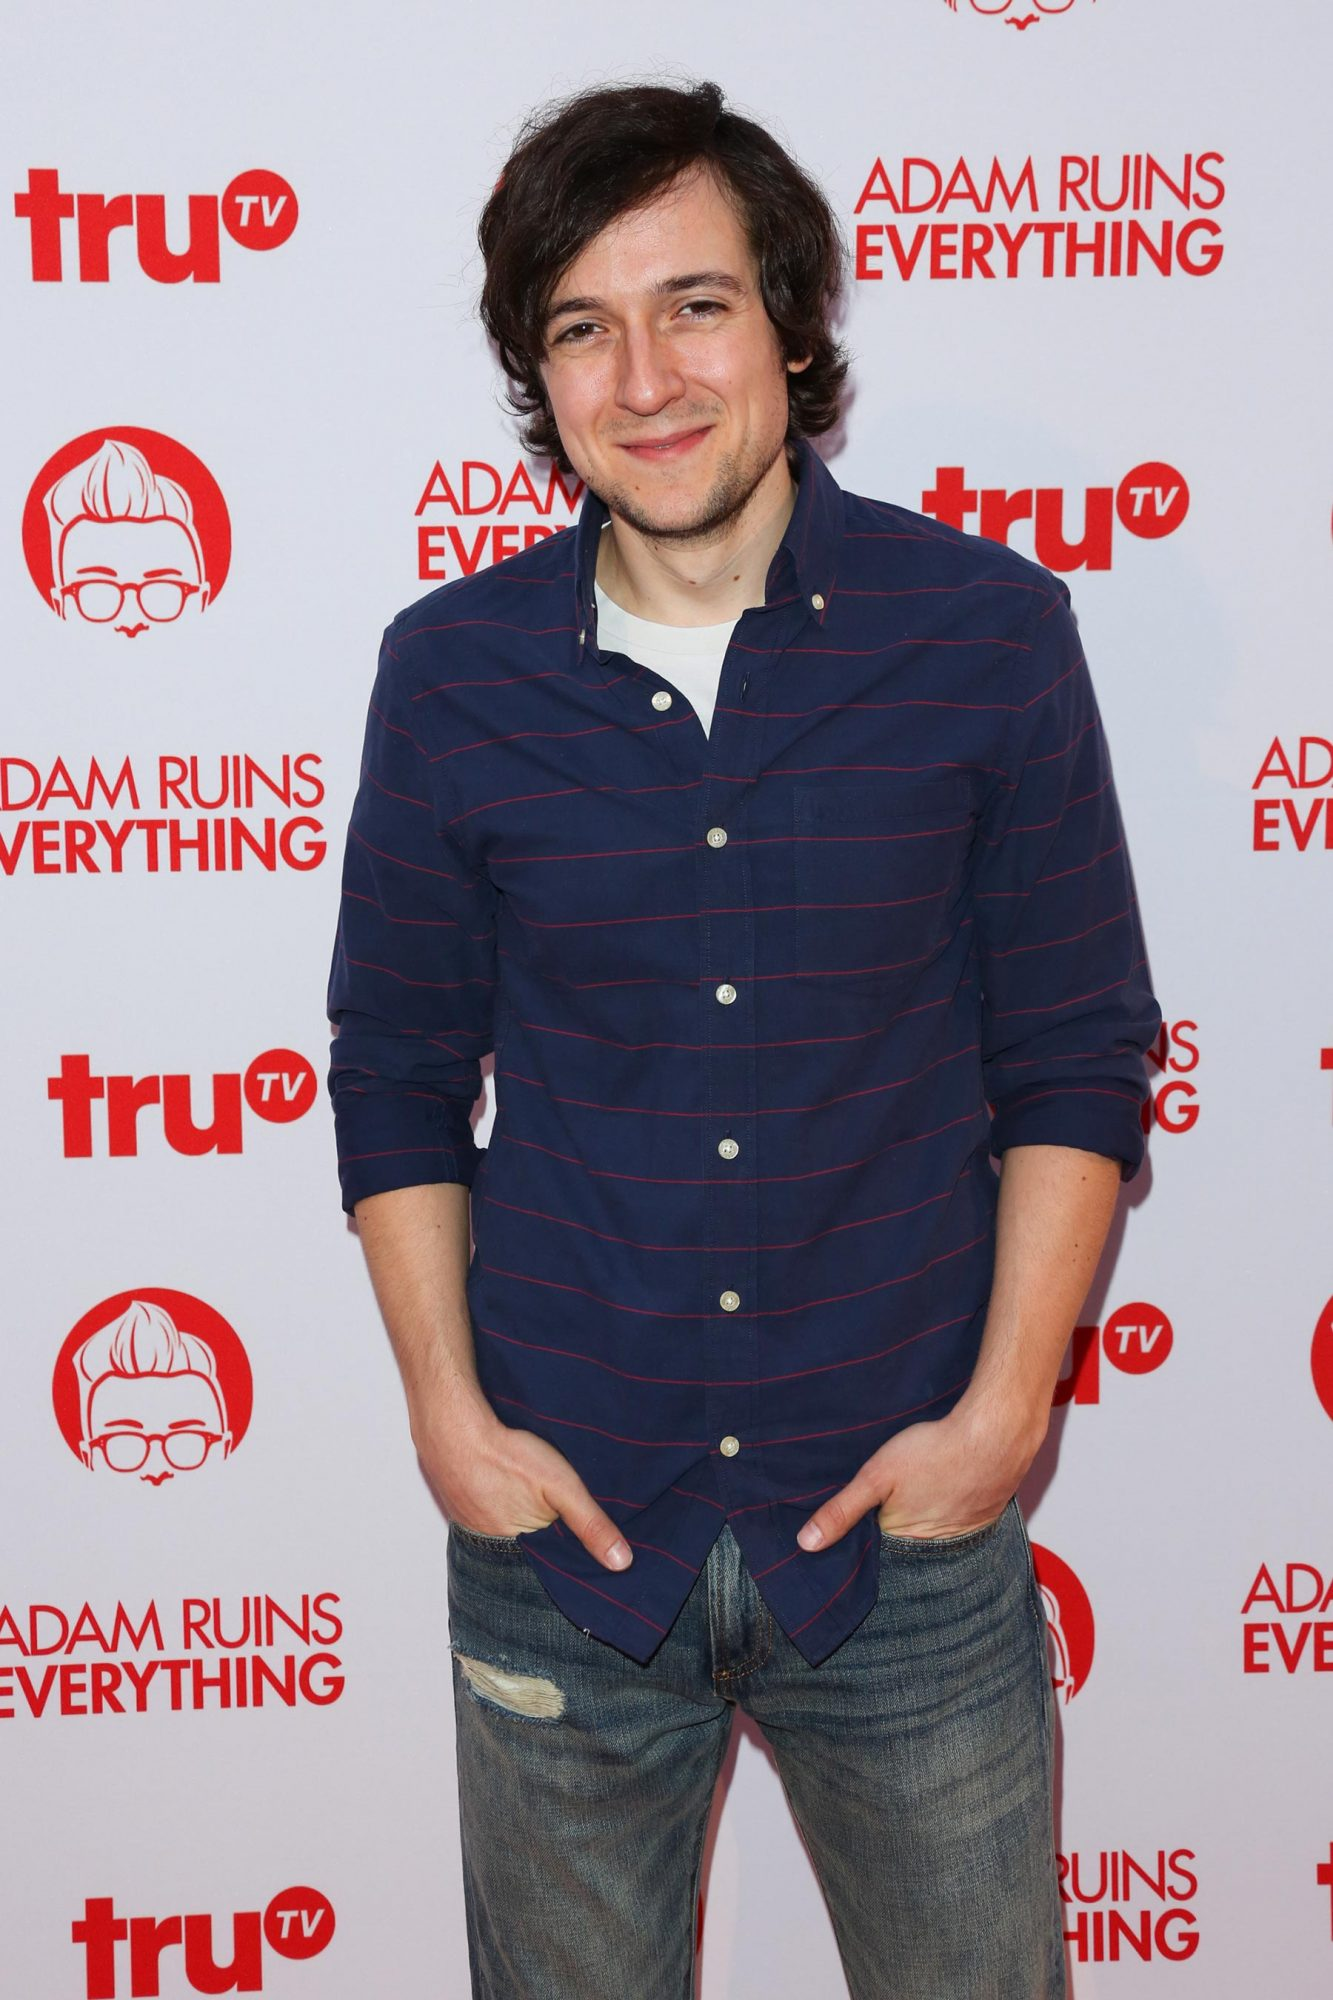 """Screening And Reception For truTV's """"Adam Ruins Everything"""" - Arrivals"""